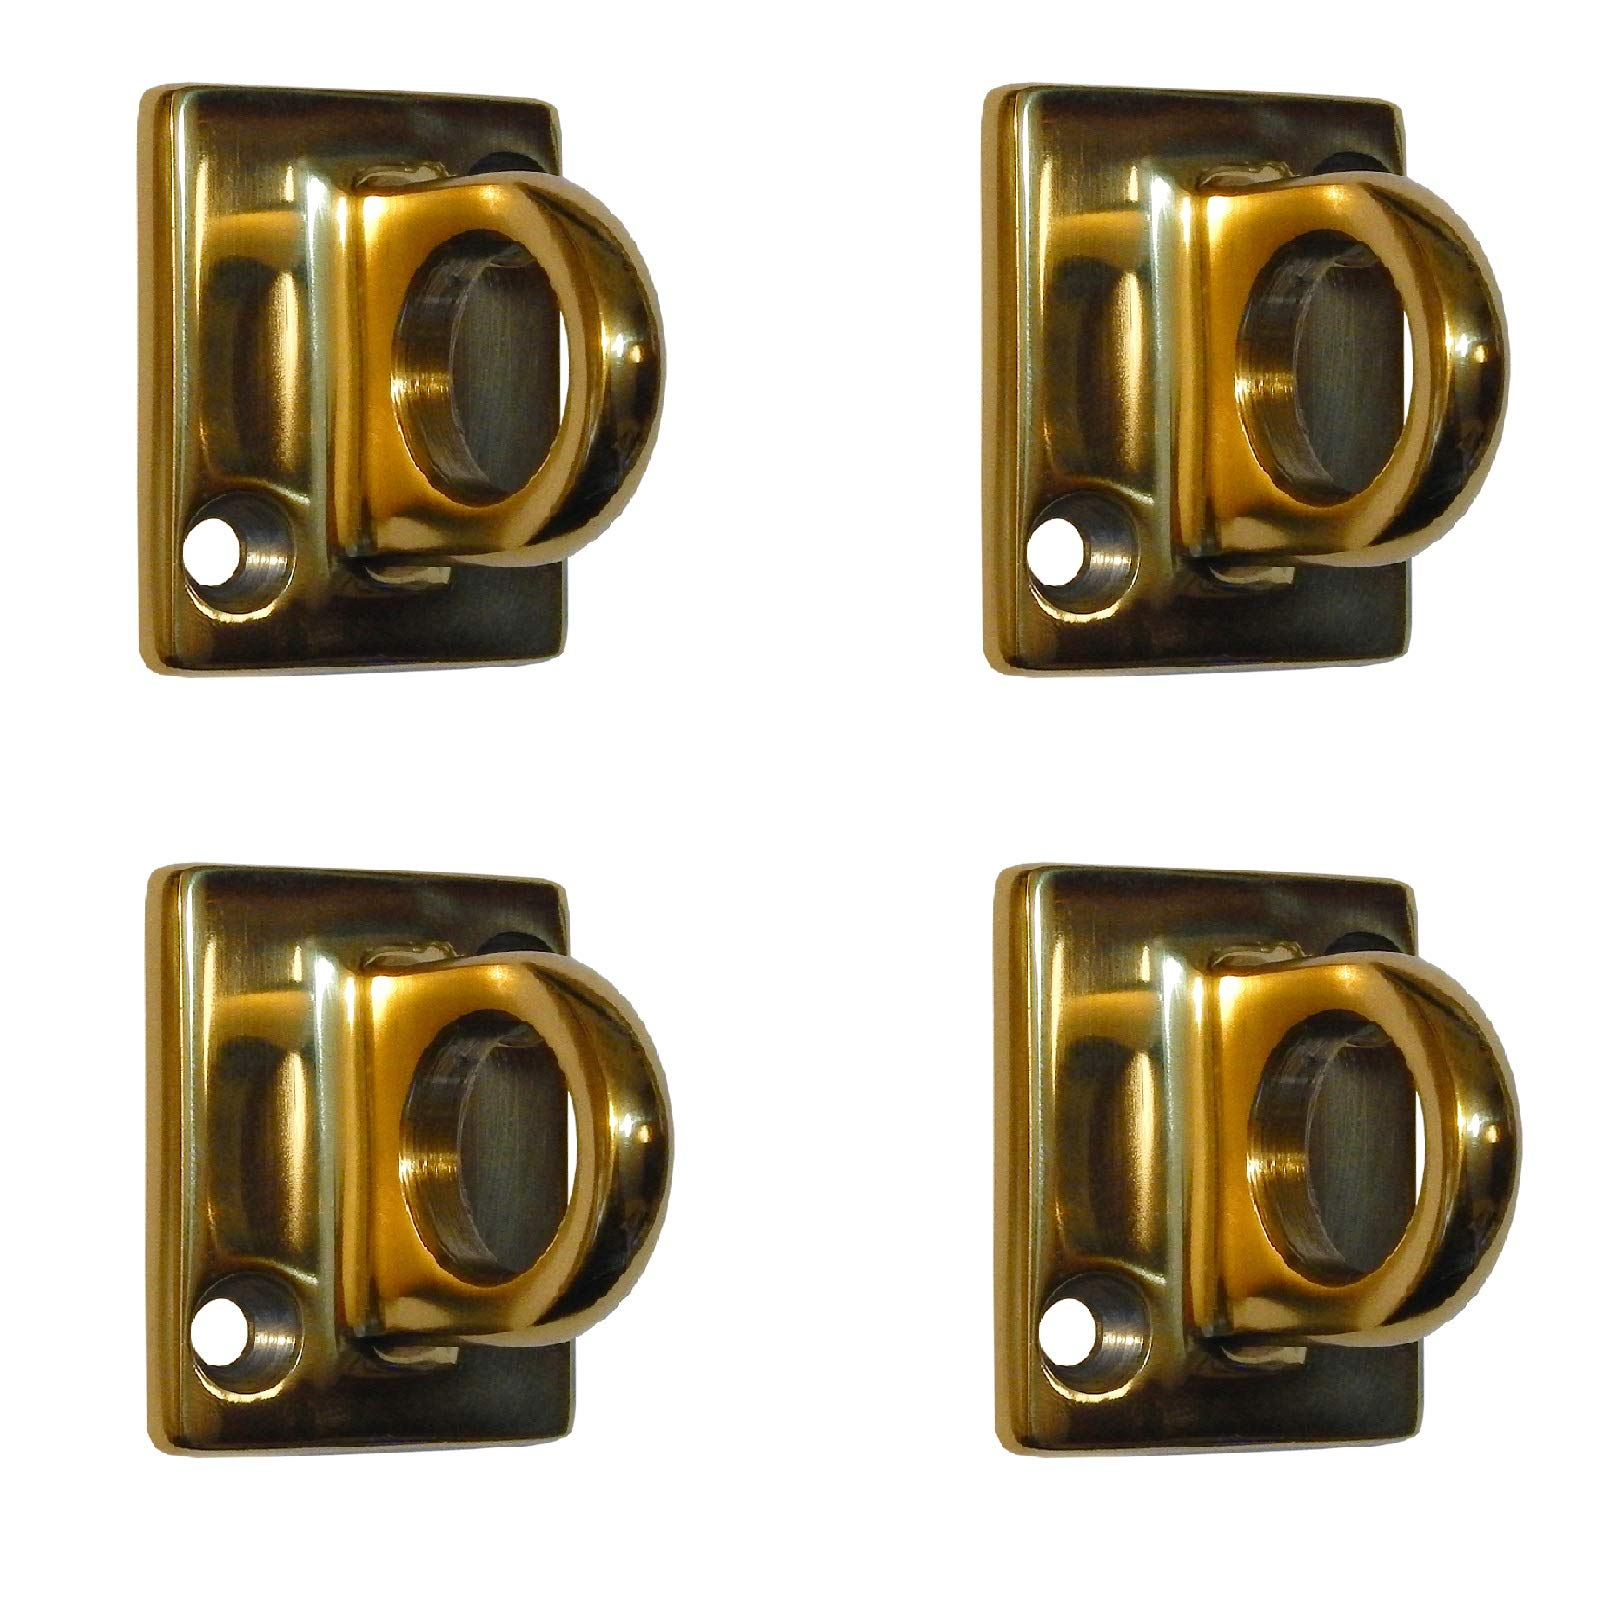 Rope Stanchion Decorative Stainless Steel Wall Plate Holder, CROWD CONTROL CENTER (4 pcs Gold)